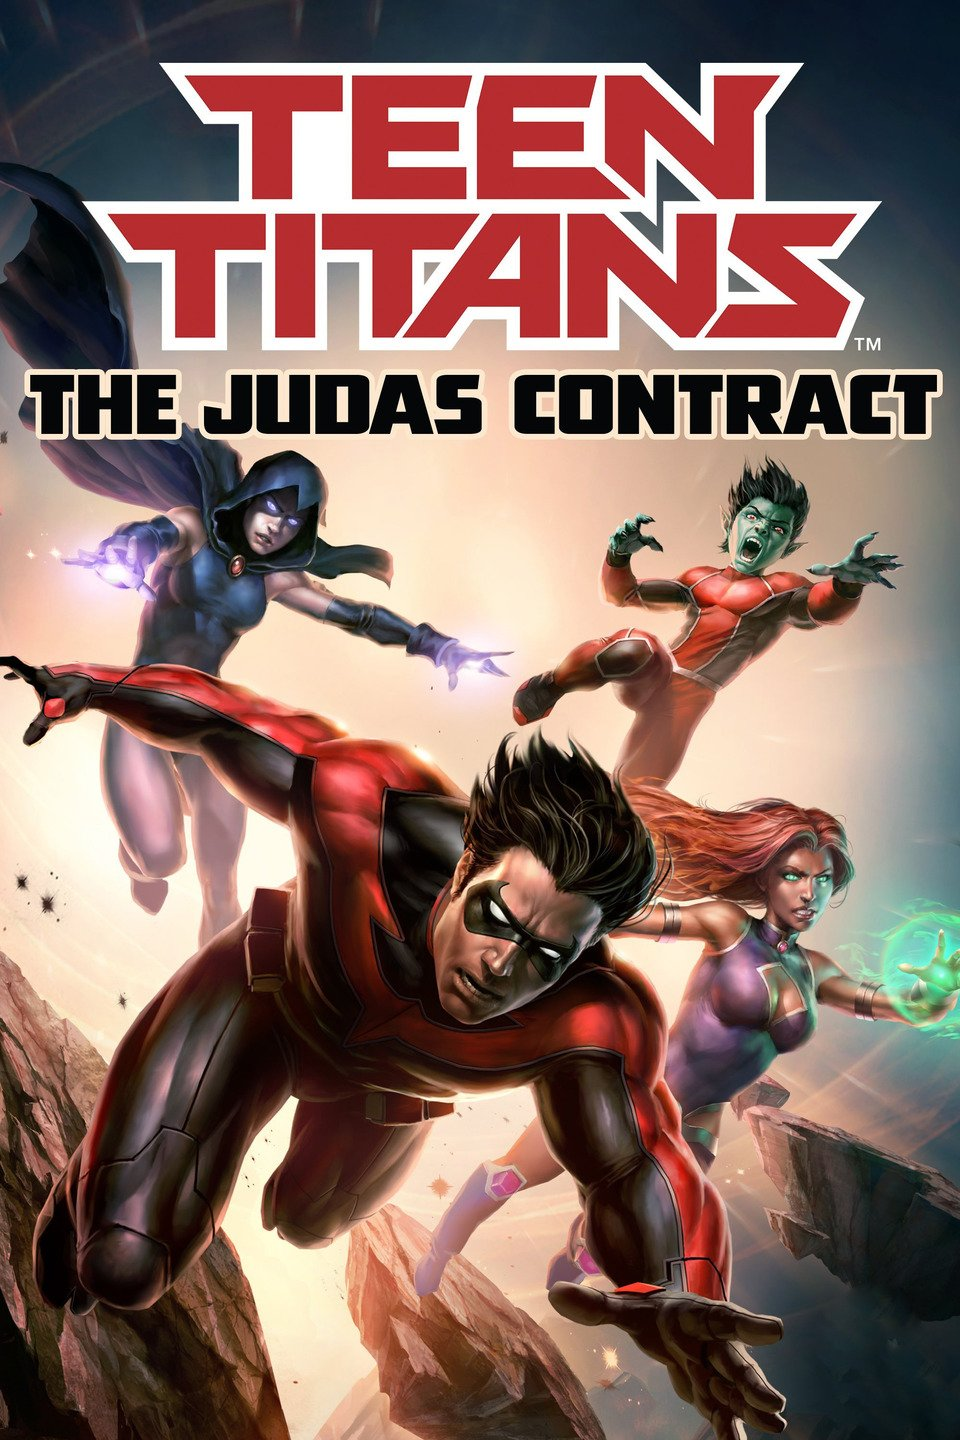 Teen Titans: The Judas Contract-Teen Titans: The Judas Contract